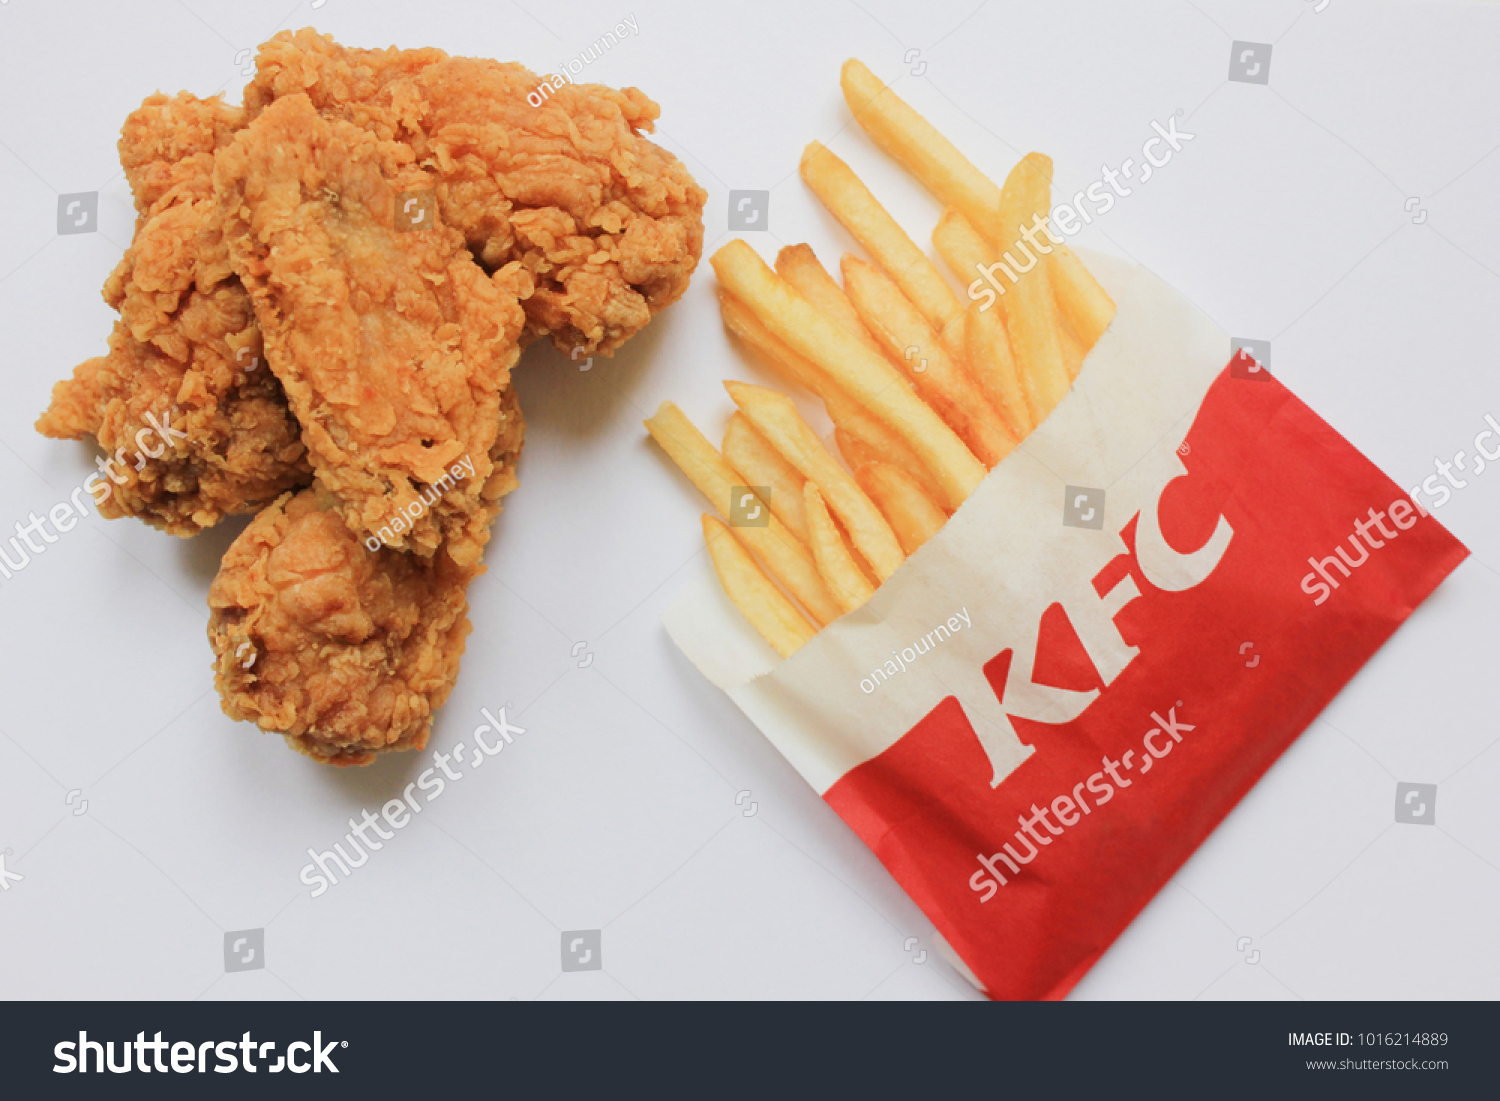 moscow russia february 1 2018 kfc stock photo (edit now) 1016214889